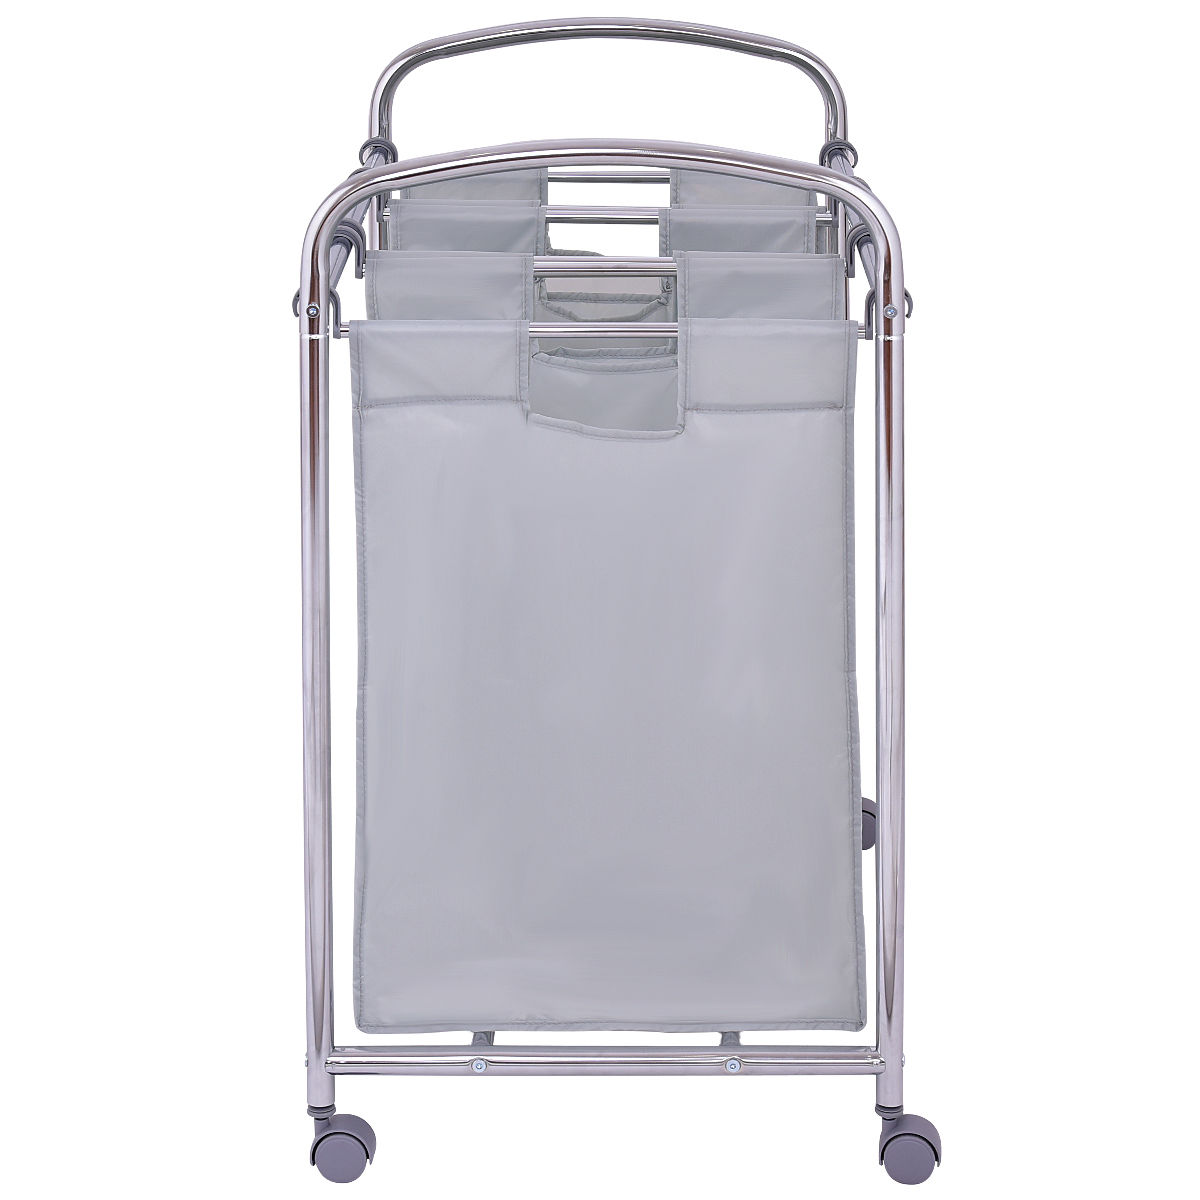 Goplus Laundry Cart Basket Triple Bag Sorter With 3 Section bags Cart Trolley Bathroom Hamper Bins Clothes Storage HW55256